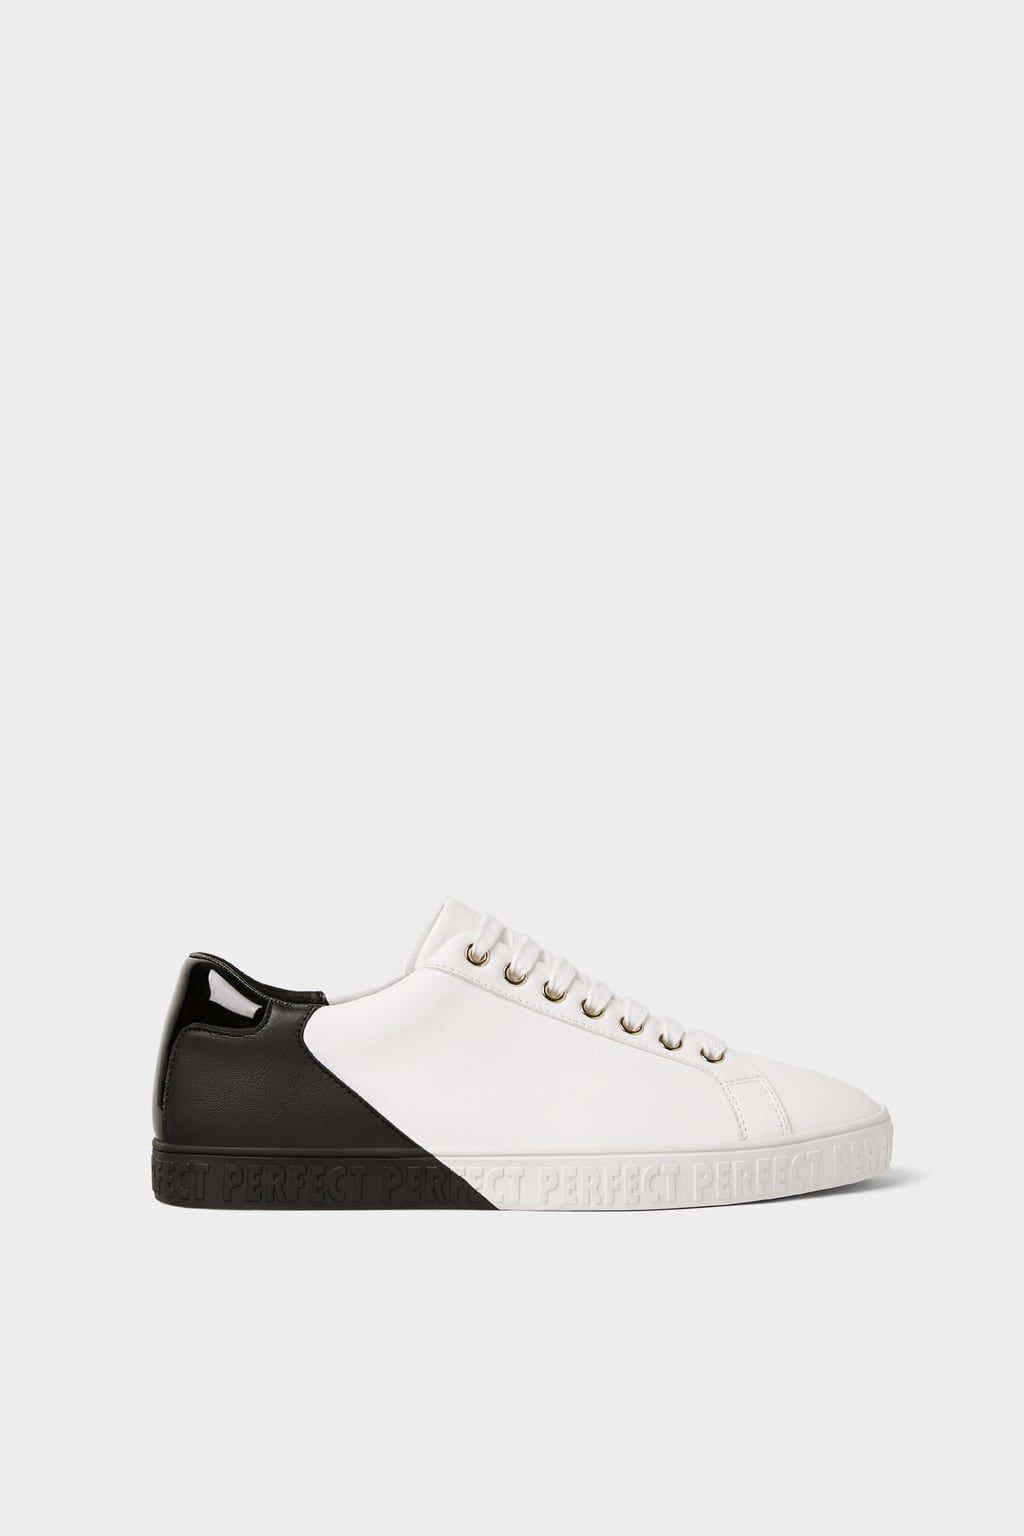 TWO-TONE SNEAKERS-View All-MAN-SHOES